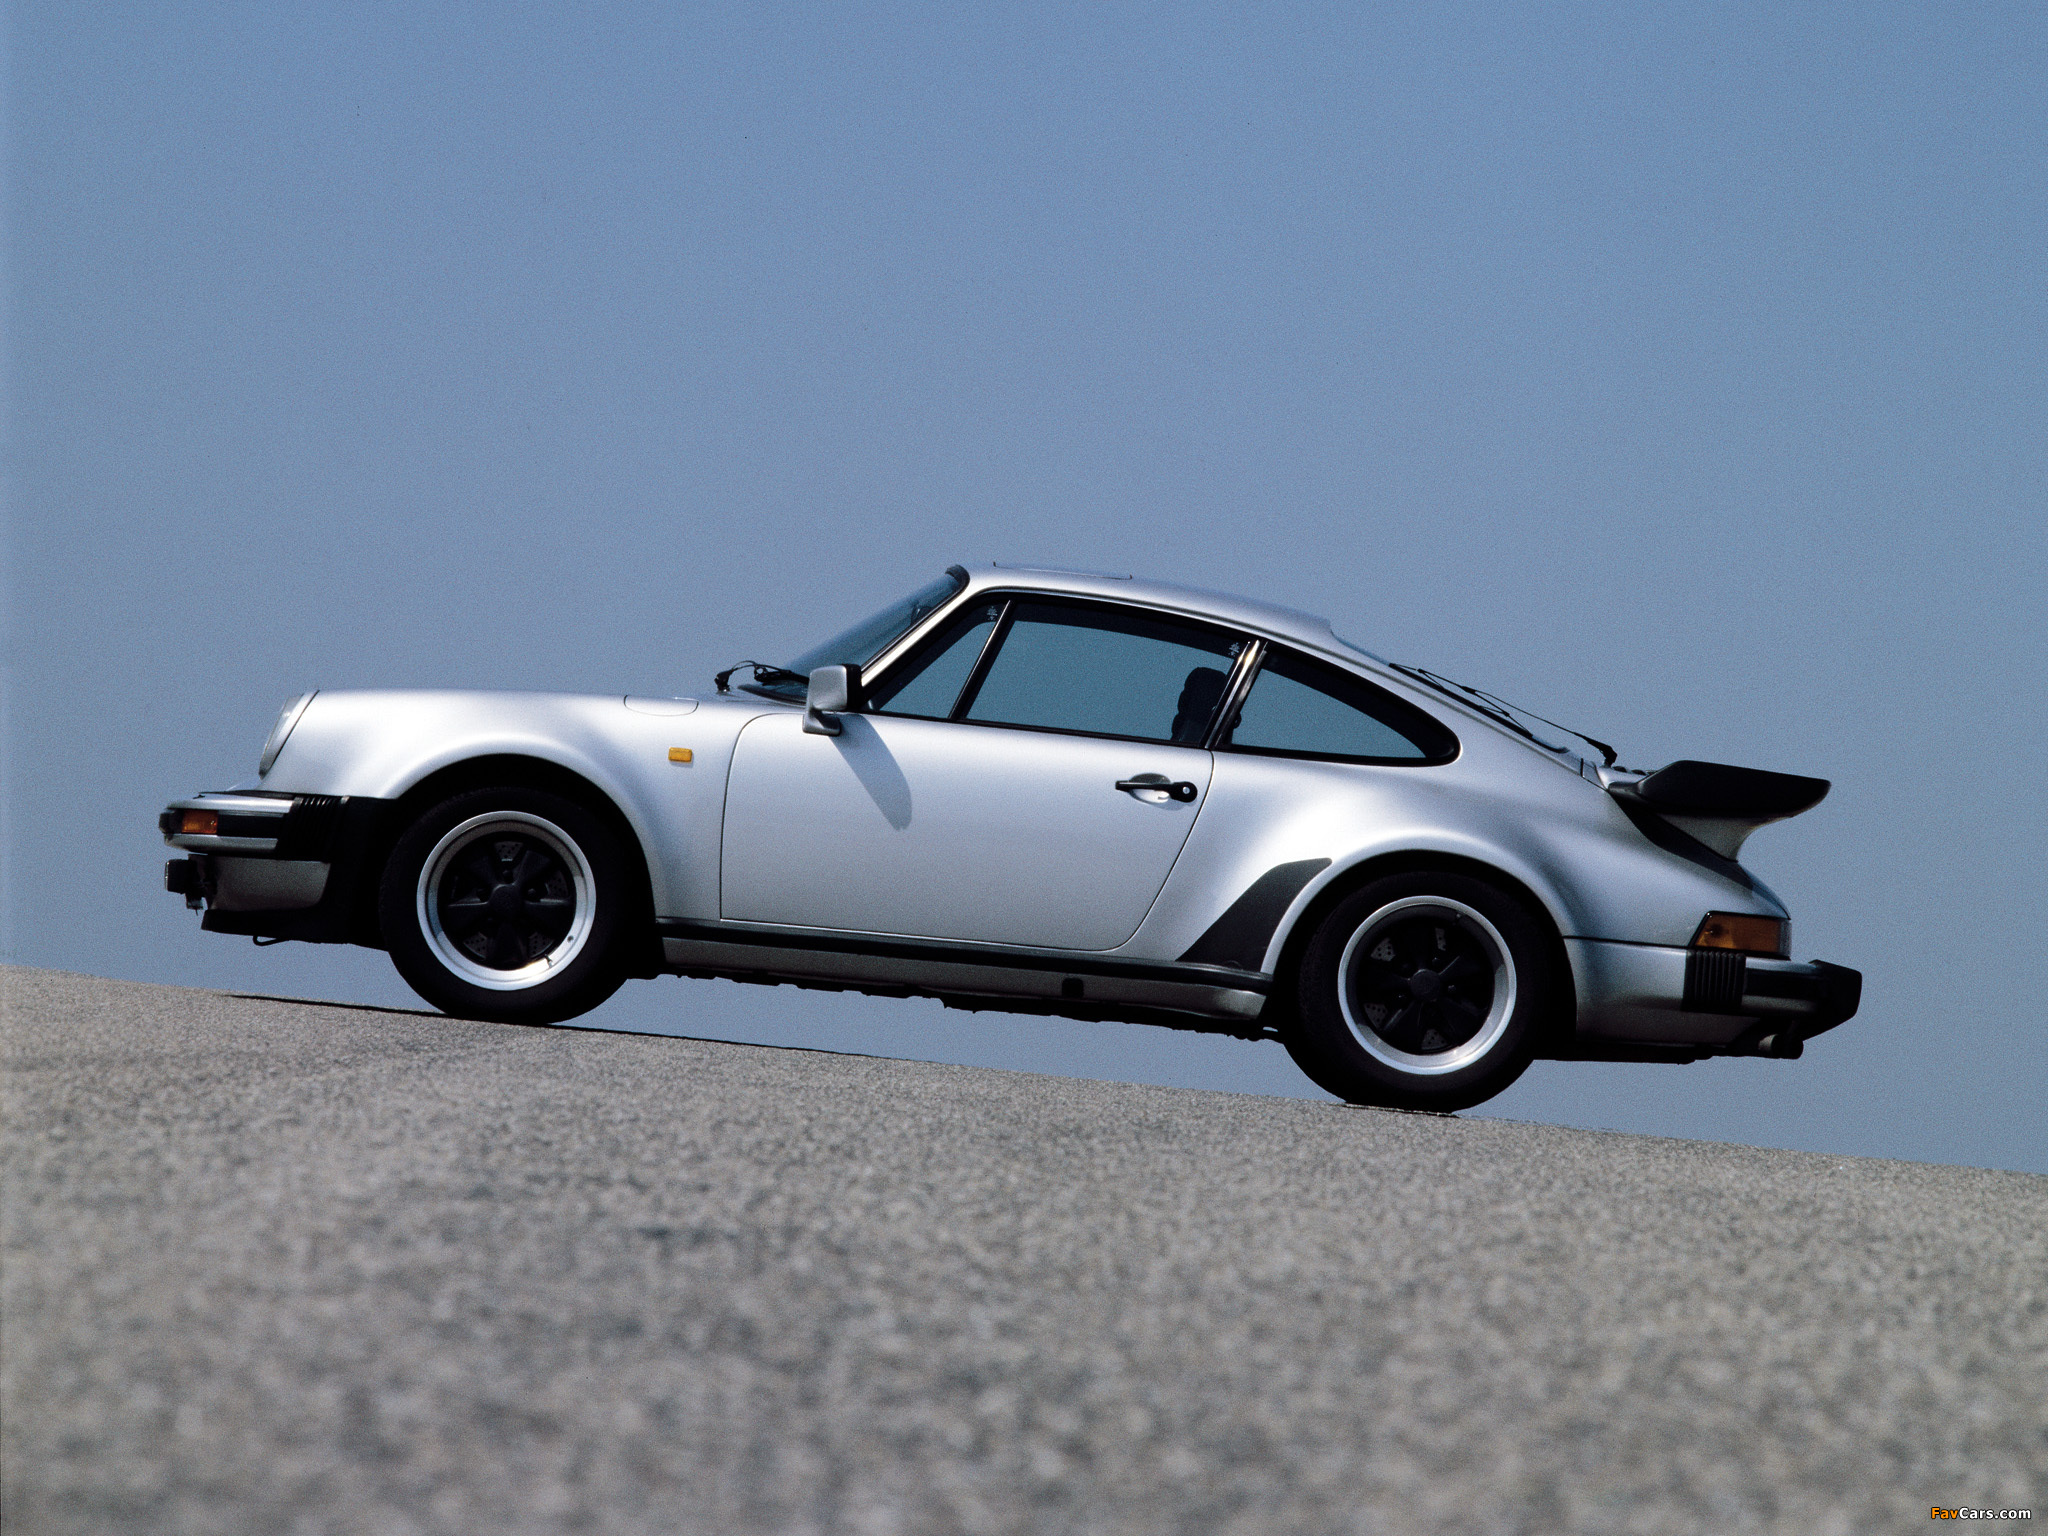 Wallpapers of Porsche 911 Turbo 33 Coupe 930 197889 2048 x 1536 2048x1536